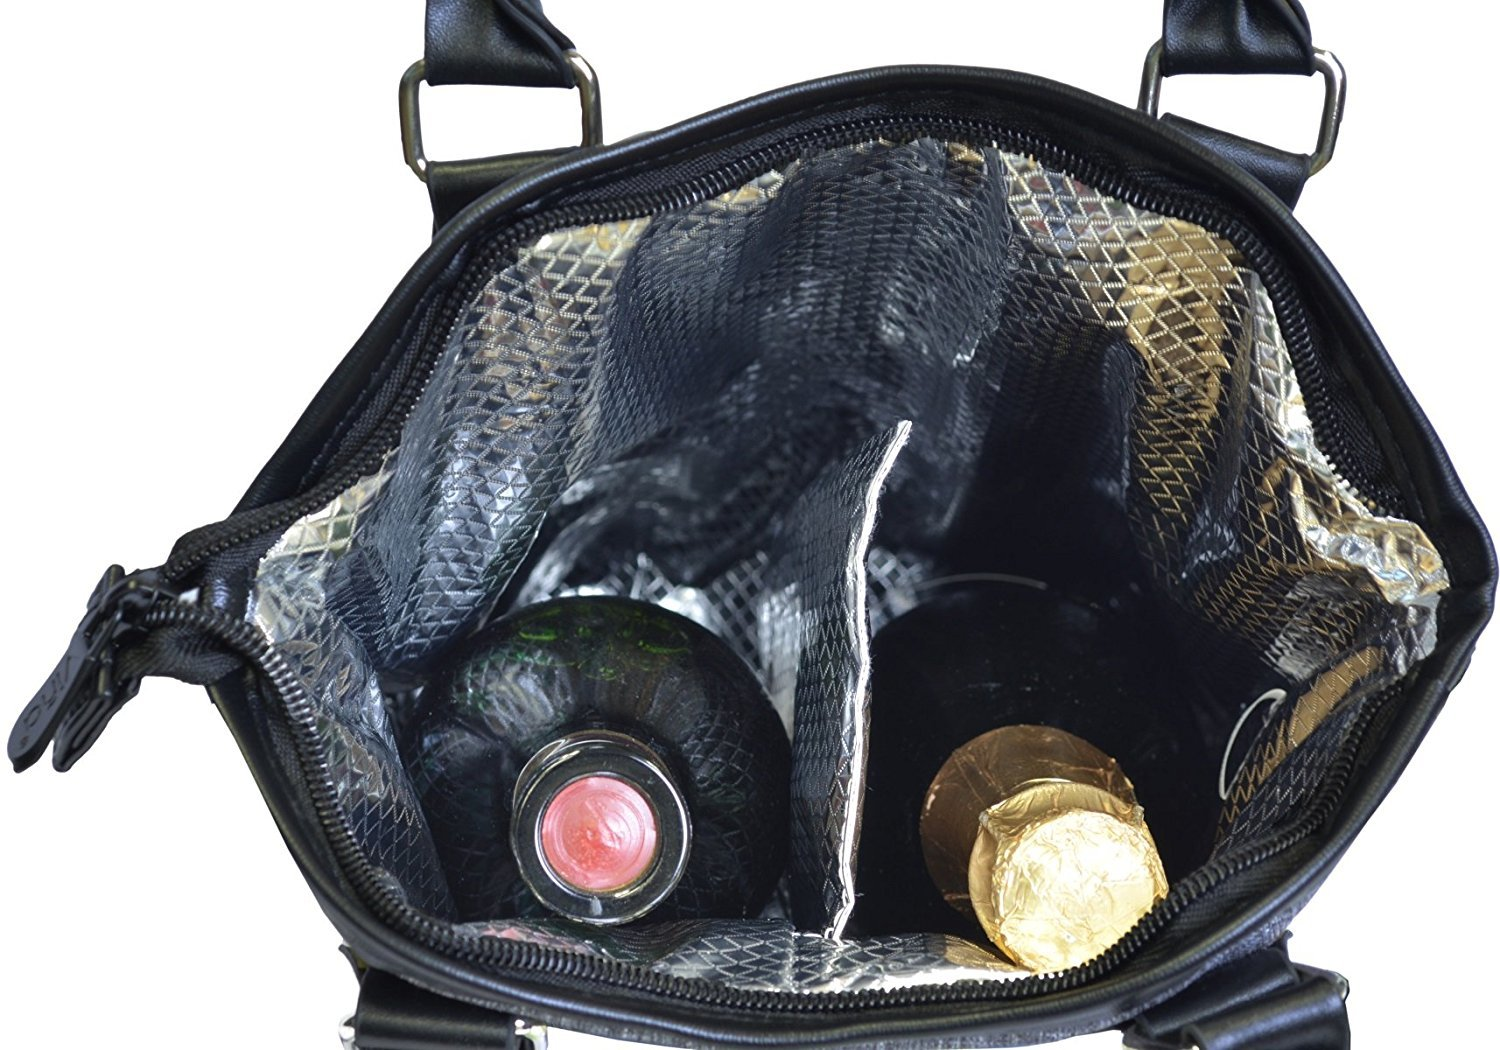 2d00caee164d Vina 2 Bottle Wine Tote Bag - Thermal and 49 similar items